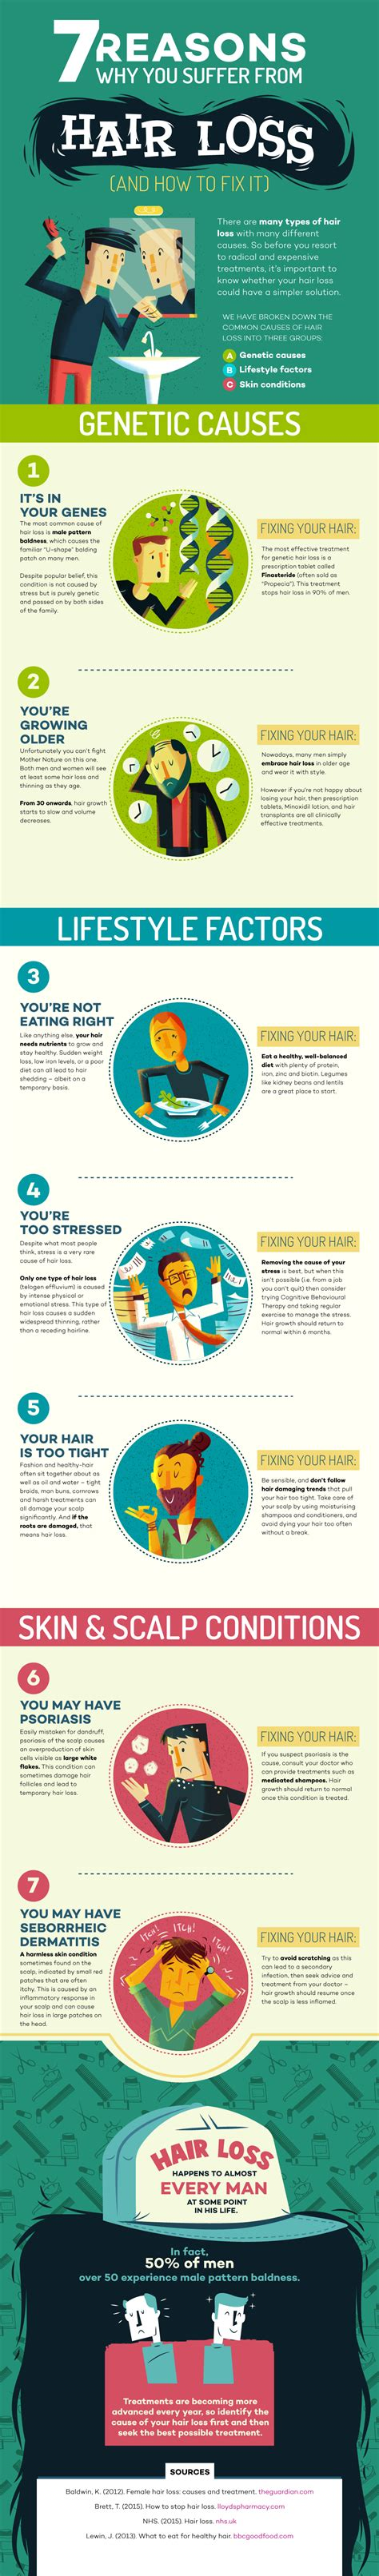 7 Reasons Bald Are by 7 Reasons Why You Suffer From Hair Loss Infographic